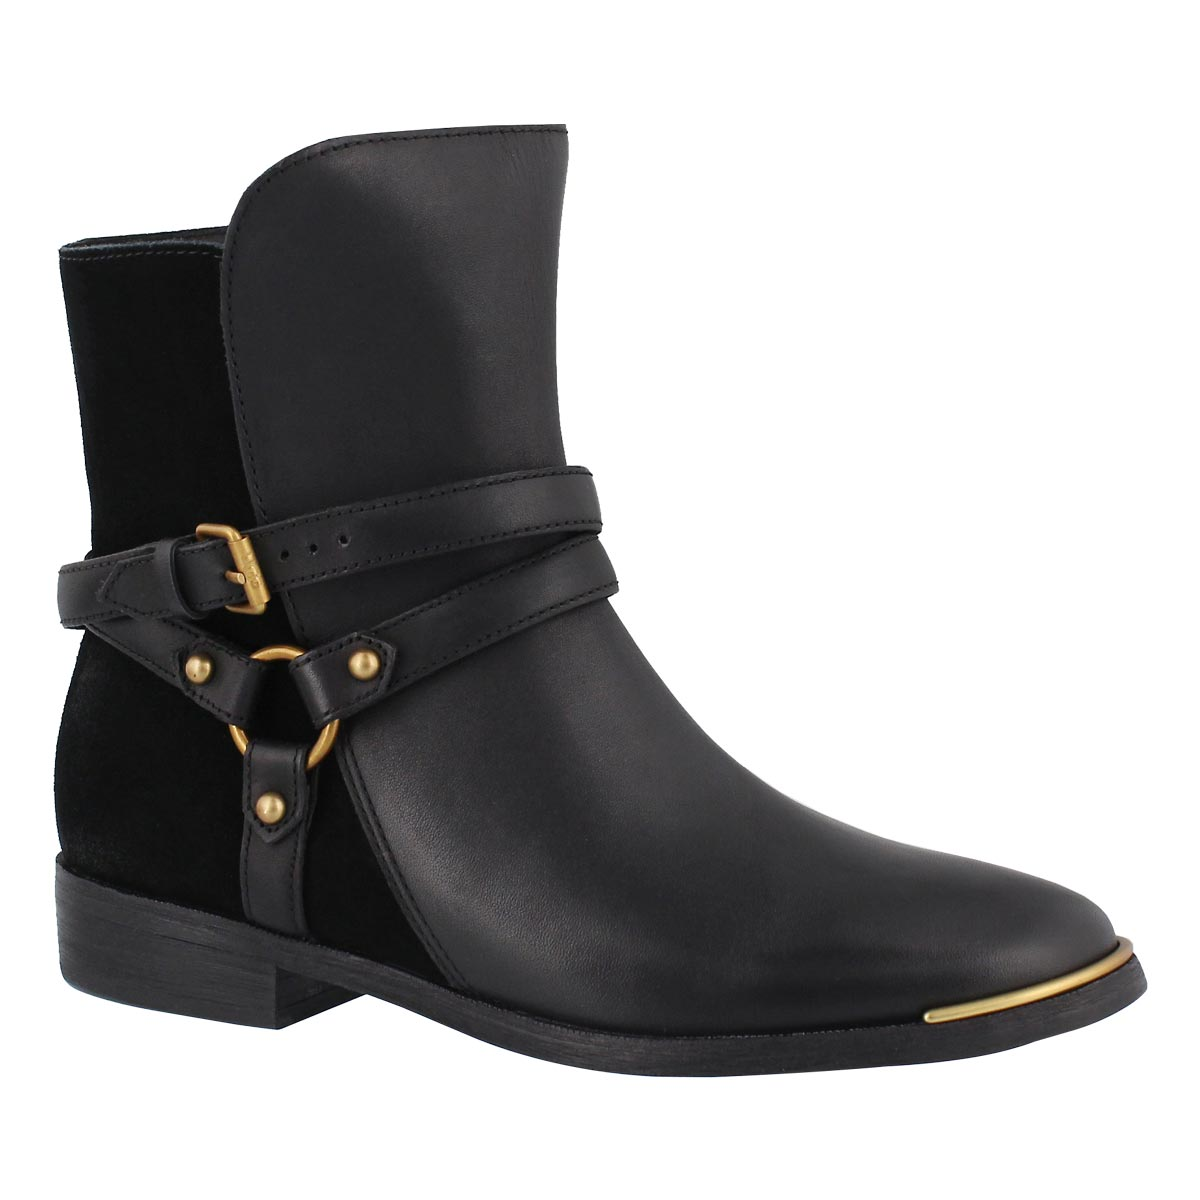 Women's KELBY black ankle boots